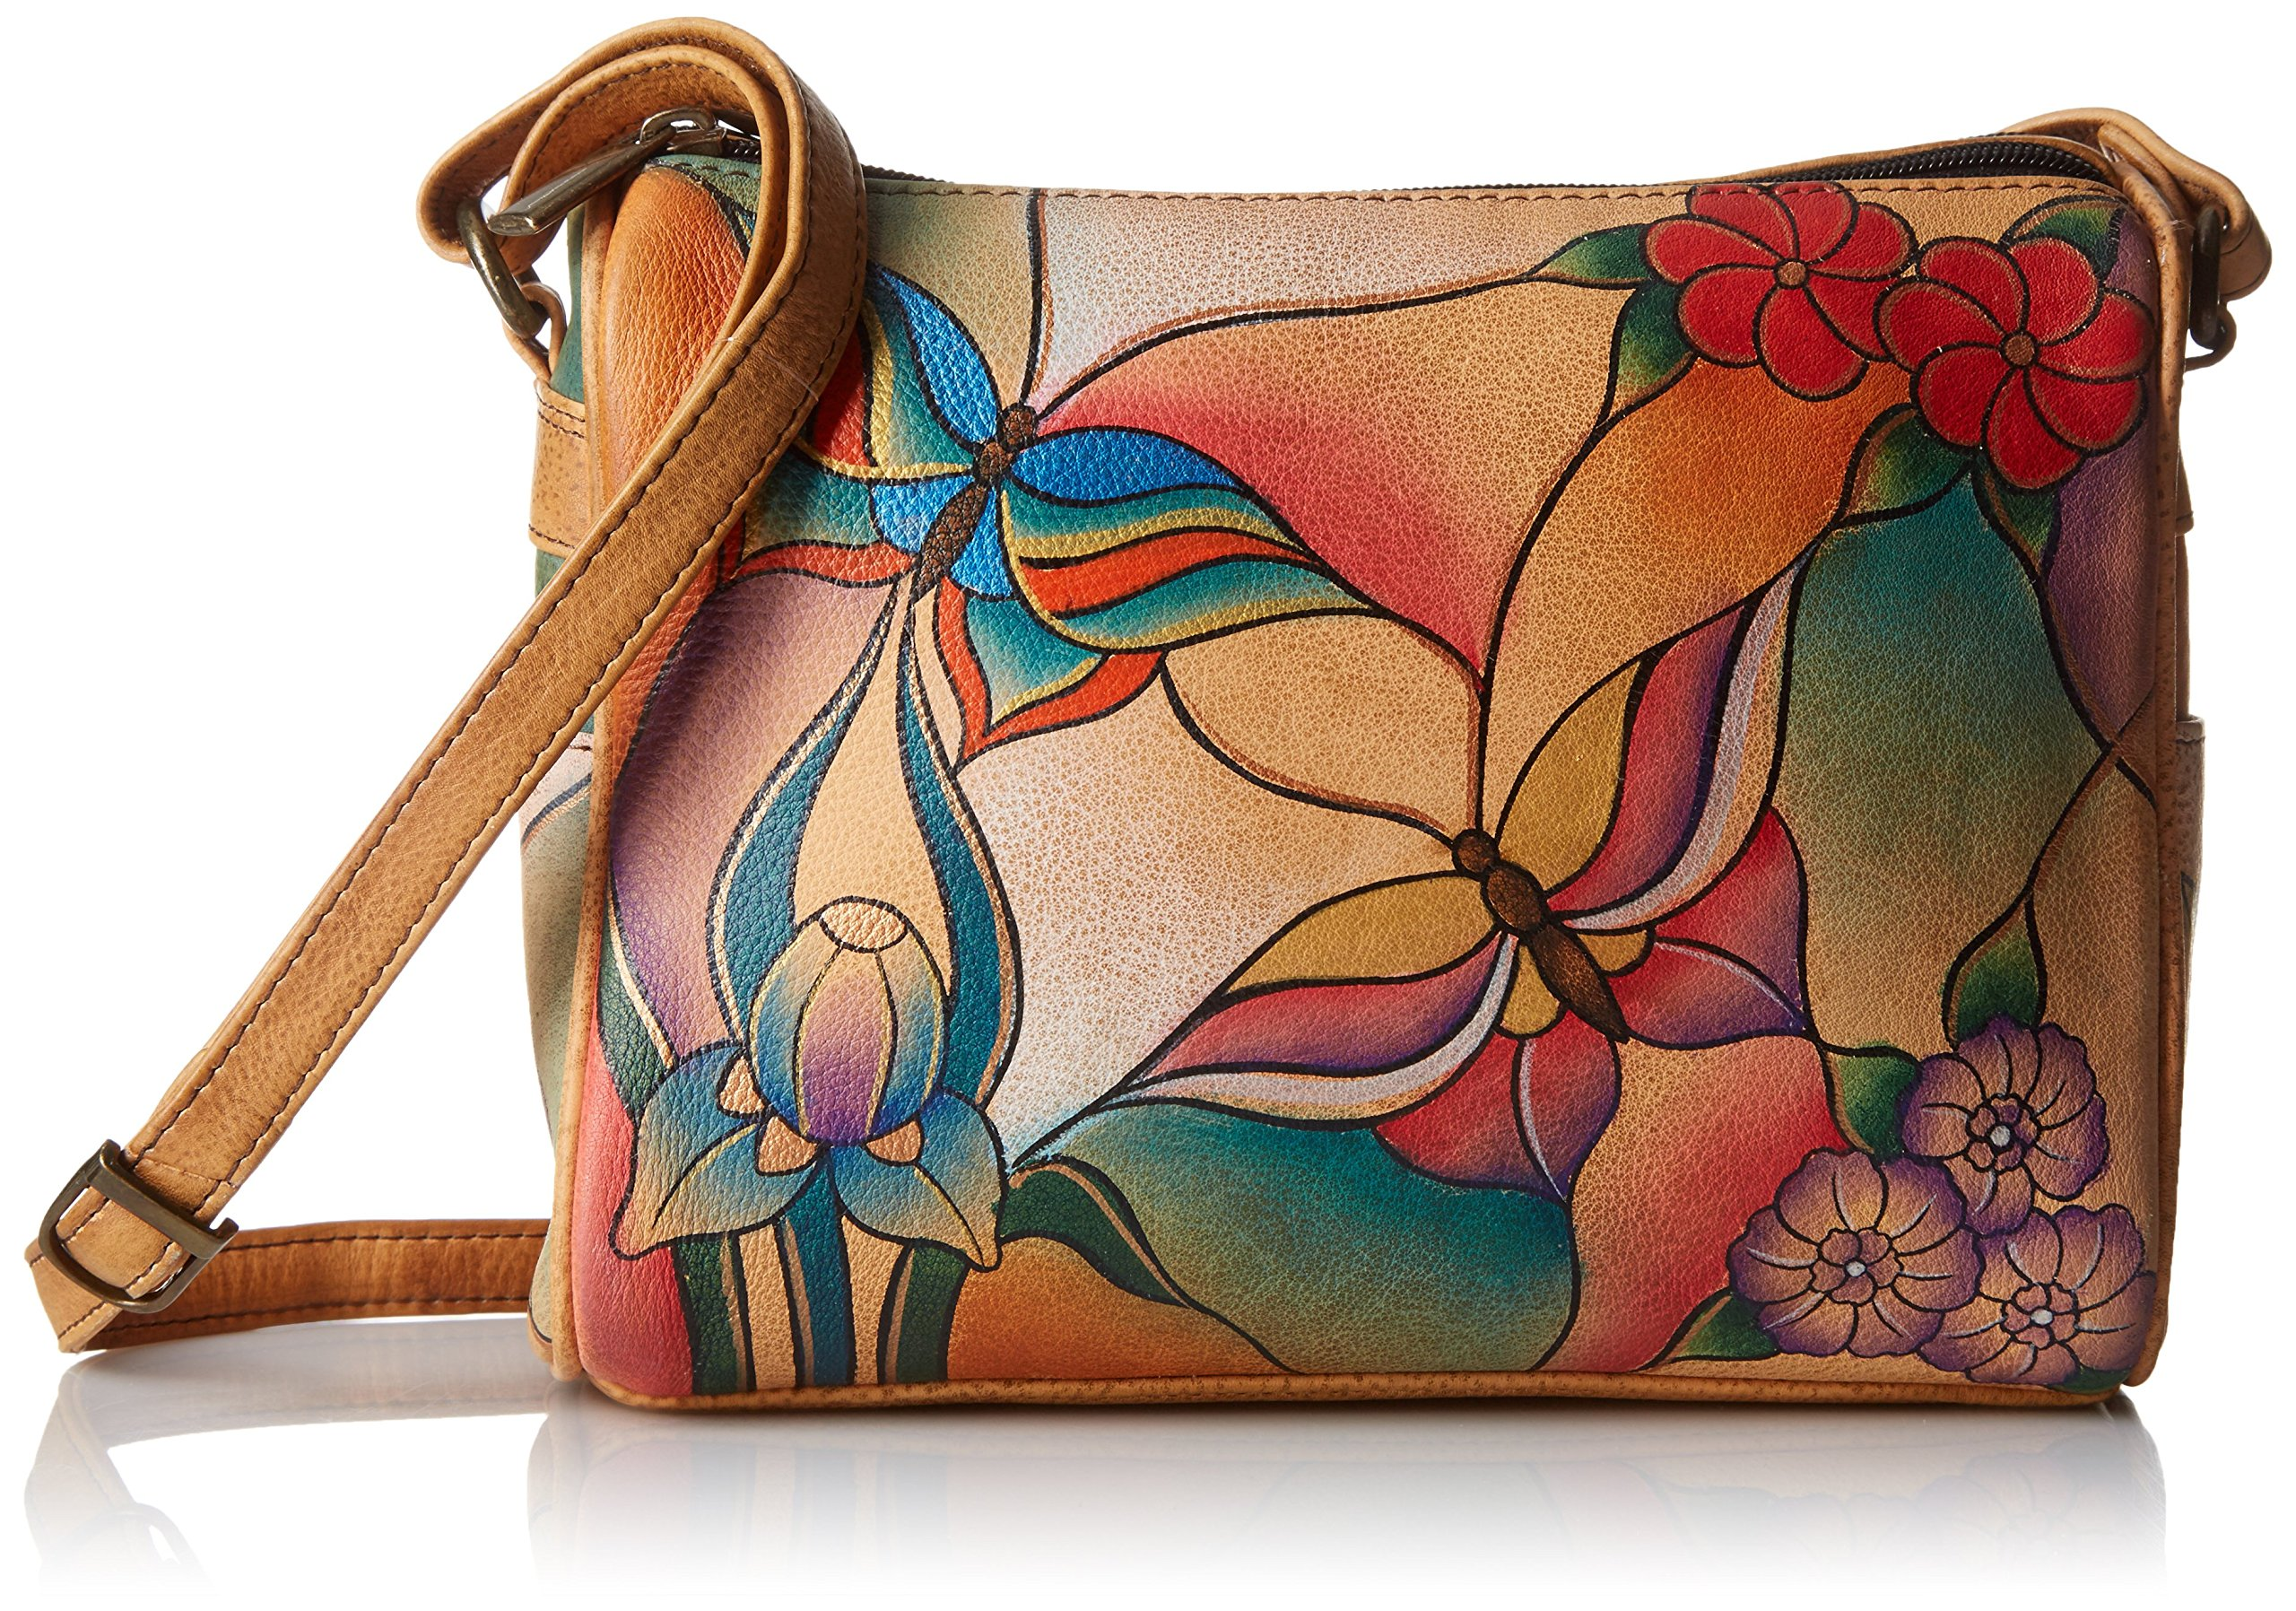 Anuschka Handpainted Leather Twin Top Small Convertible, Butterfly Glass Painting, One Size by Anna by Anuschka